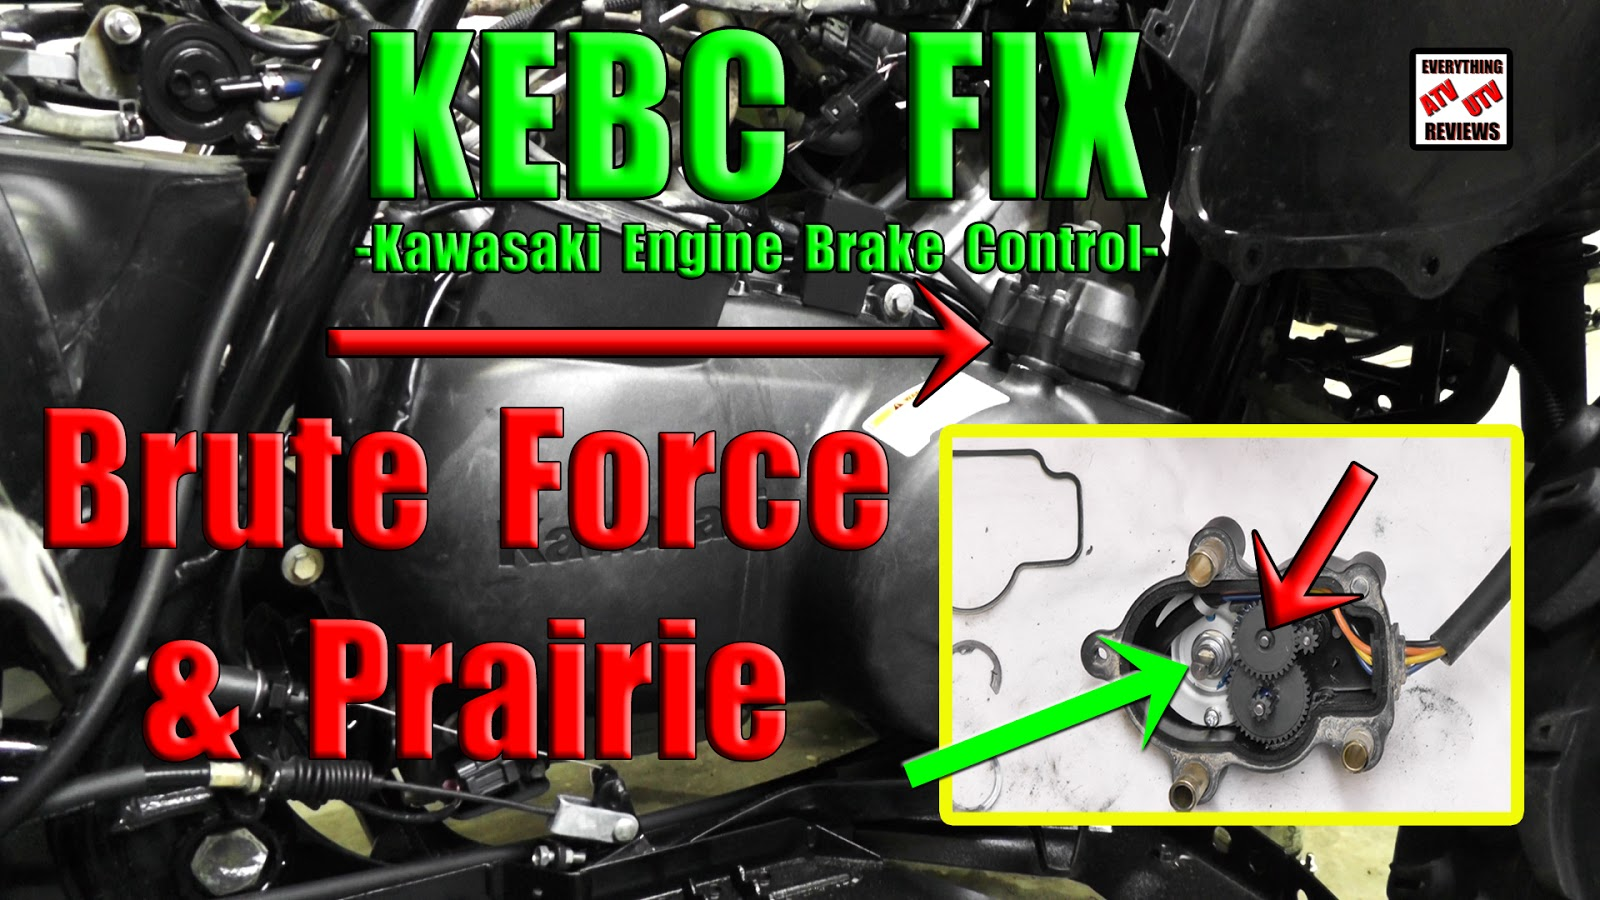 Kawasaki Brute Force 750 4x4 Wiring Diagram Building Electrical Symbols Everything Atv Utv Reviews How To Take A Part The Kebc